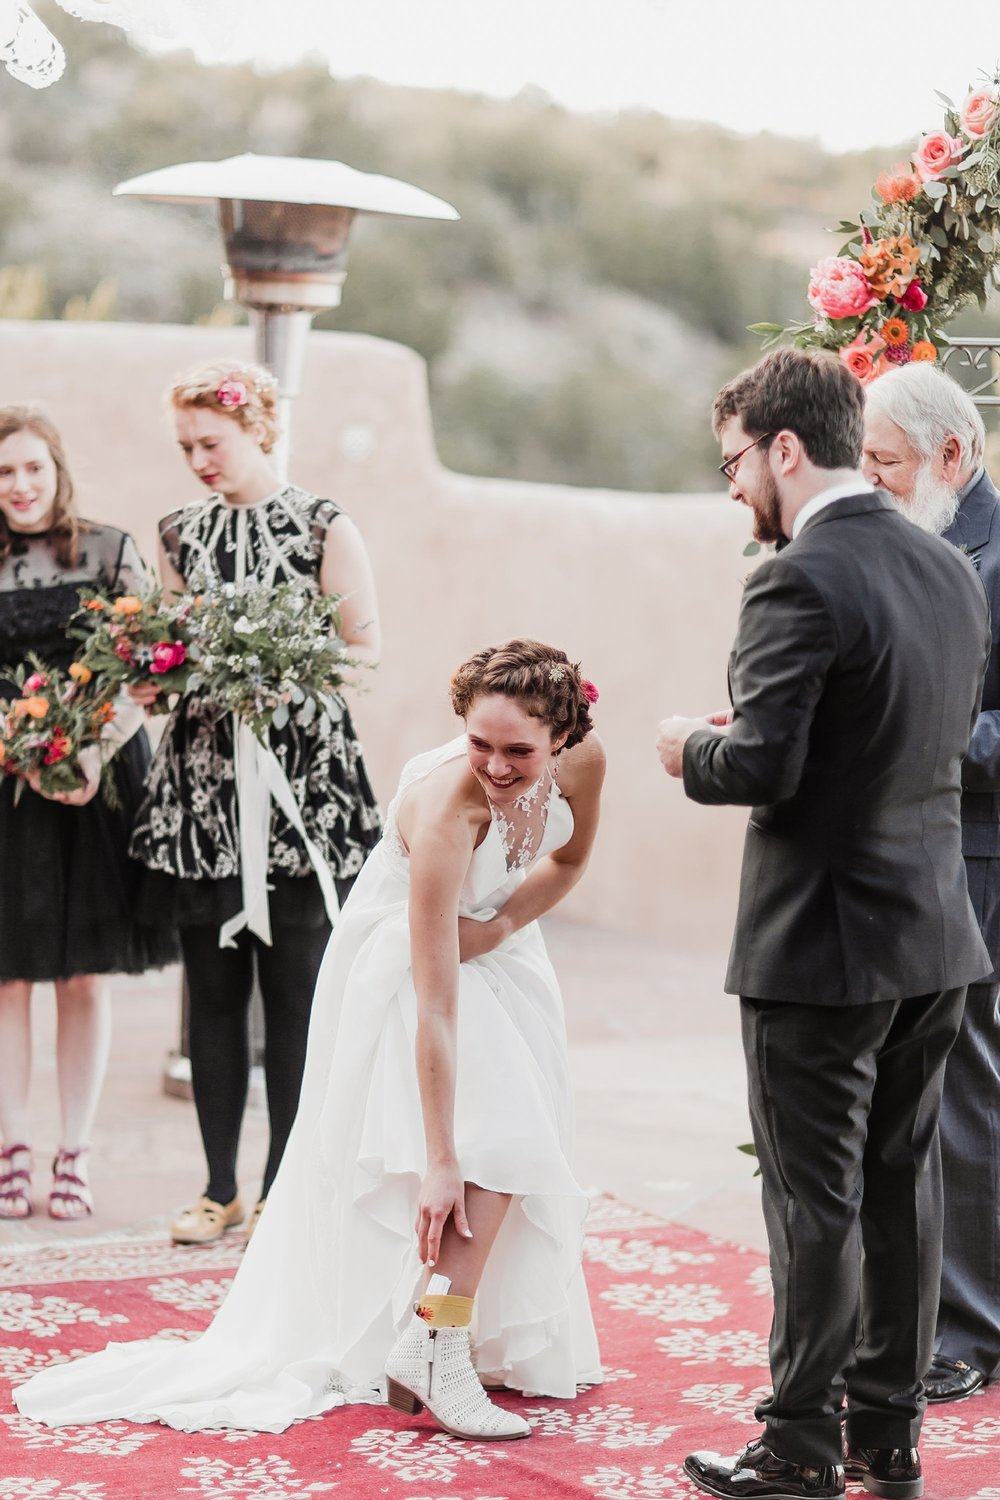 Alicia+lucia+photography+-+albuquerque+wedding+photographer+-+santa+fe+wedding+photography+-+new+mexico+wedding+photographer+-+new+mexico+wedding+-+engagement+-+santa+fe+wedding+-+hacienda+dona+andrea+-+hacienda+dona+andrea+wedding_0046.jpg